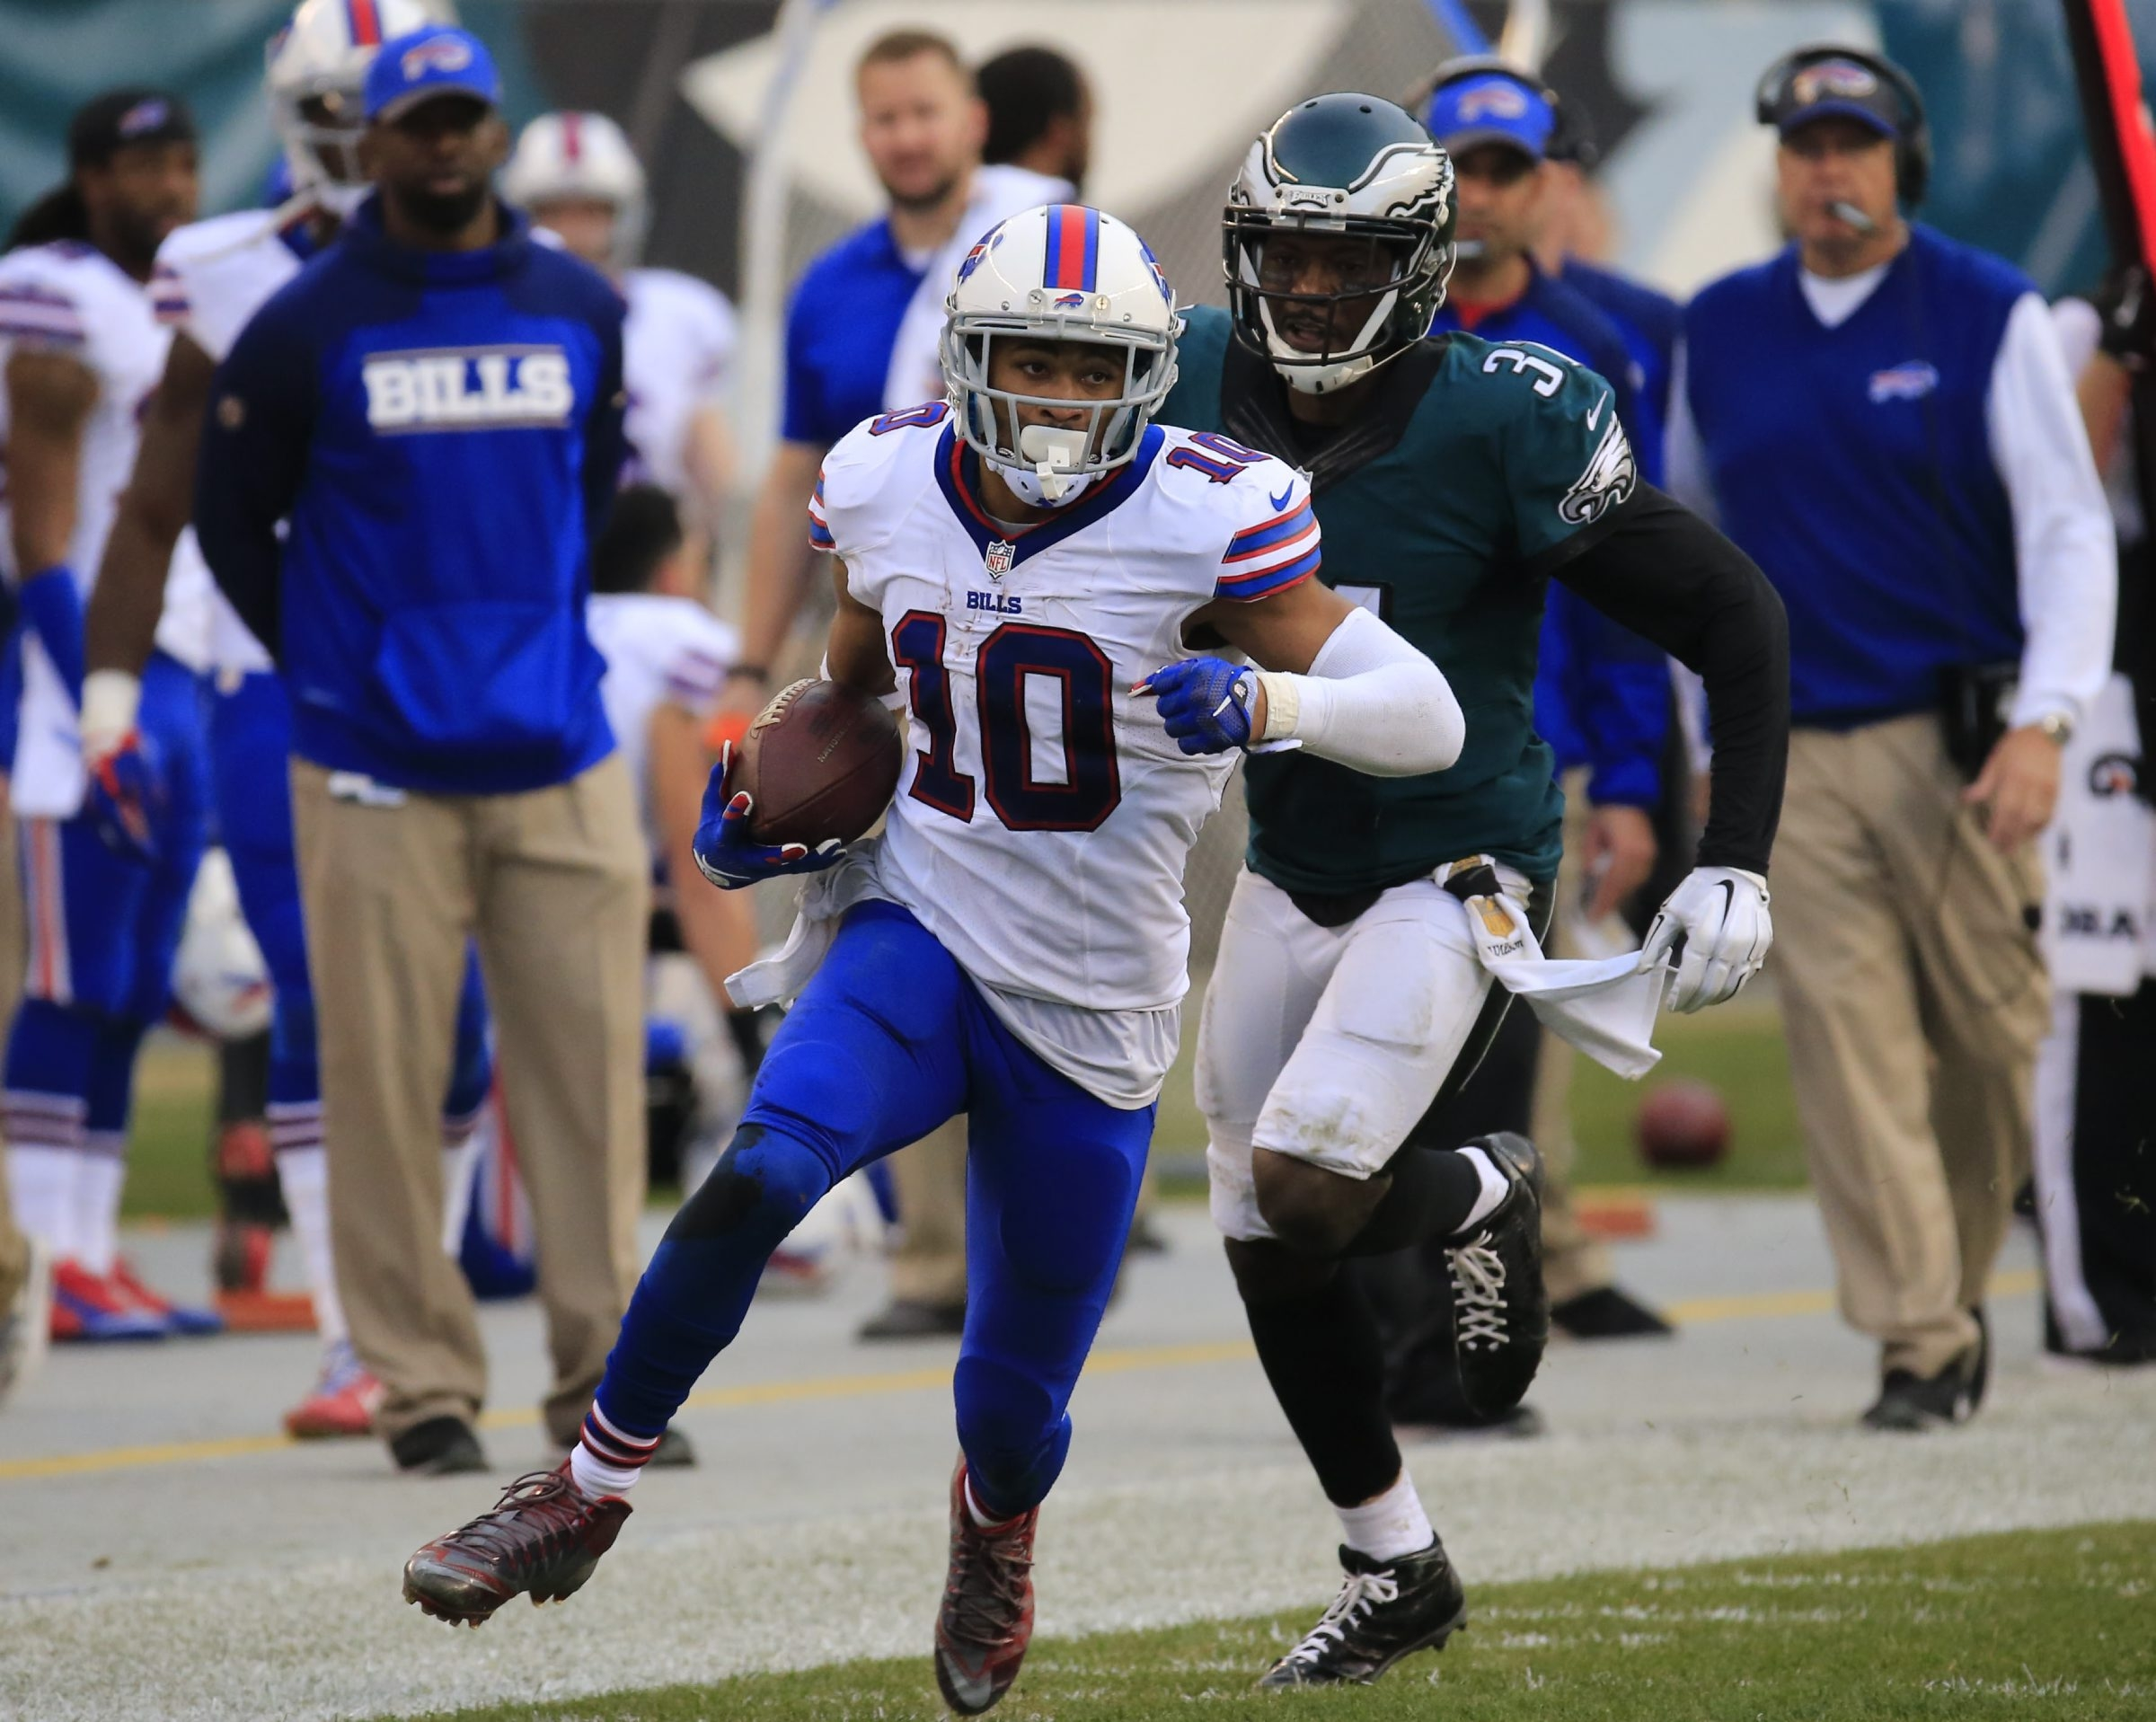 Bills wide receiver Robert Woods runs after making a pass reception against the Eagles. Woods' yards-after-catch production is something he wants to improve on as he looks to 2016. It will be the final season of the rookie contract he signed in 2013.